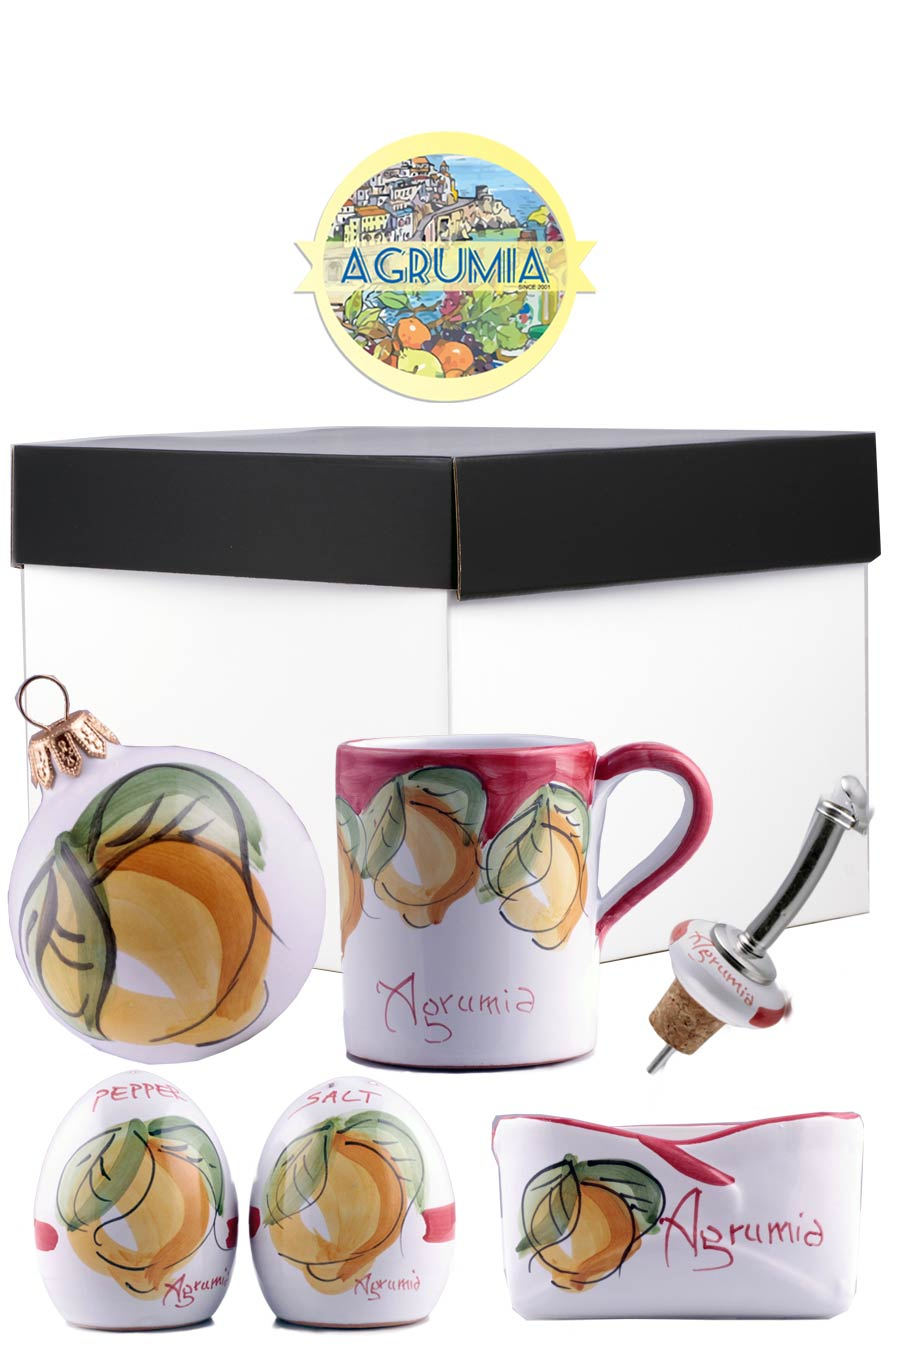 Agrumia Art and Craft Hamper